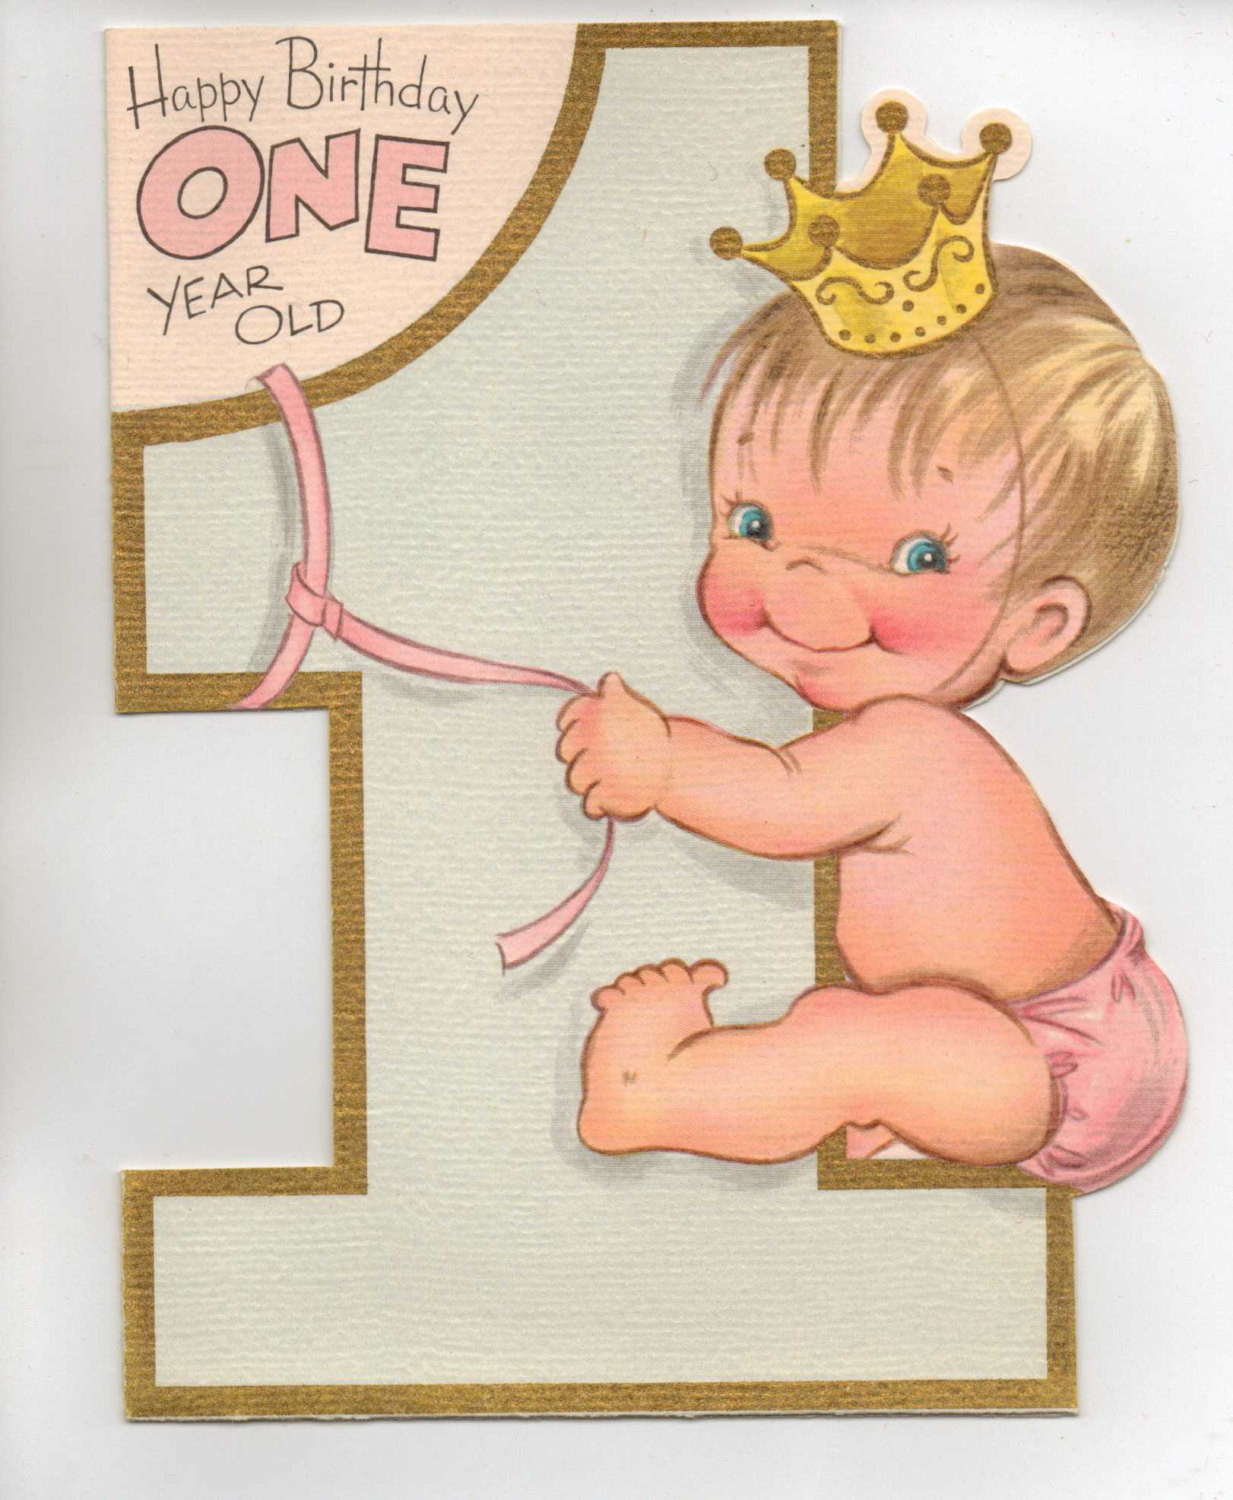 One Year Old Birthday Quotes  1950s Happy Birthday e Year Old